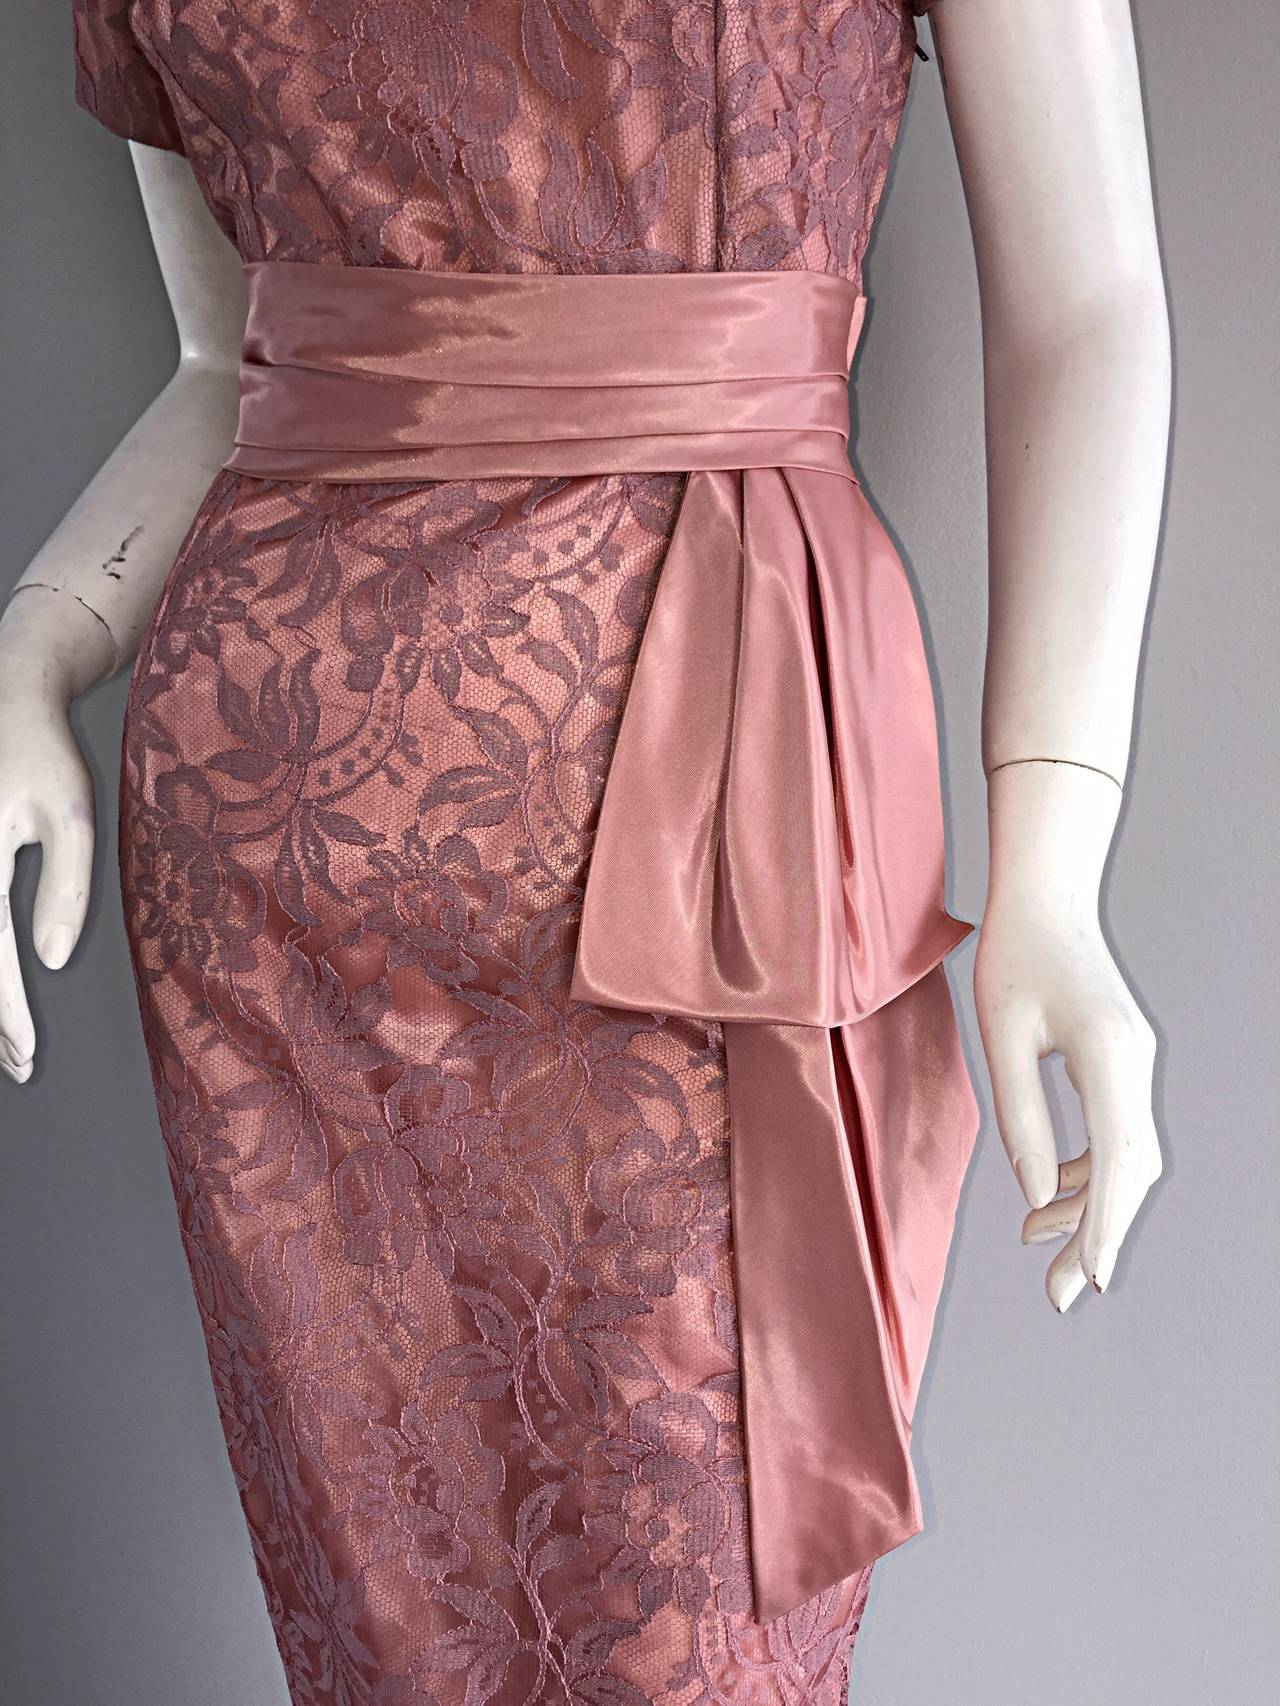 Beautiful Vintage 1950s 50s Pink Lace Wiggle Dress w/ Scalloped Edges 8